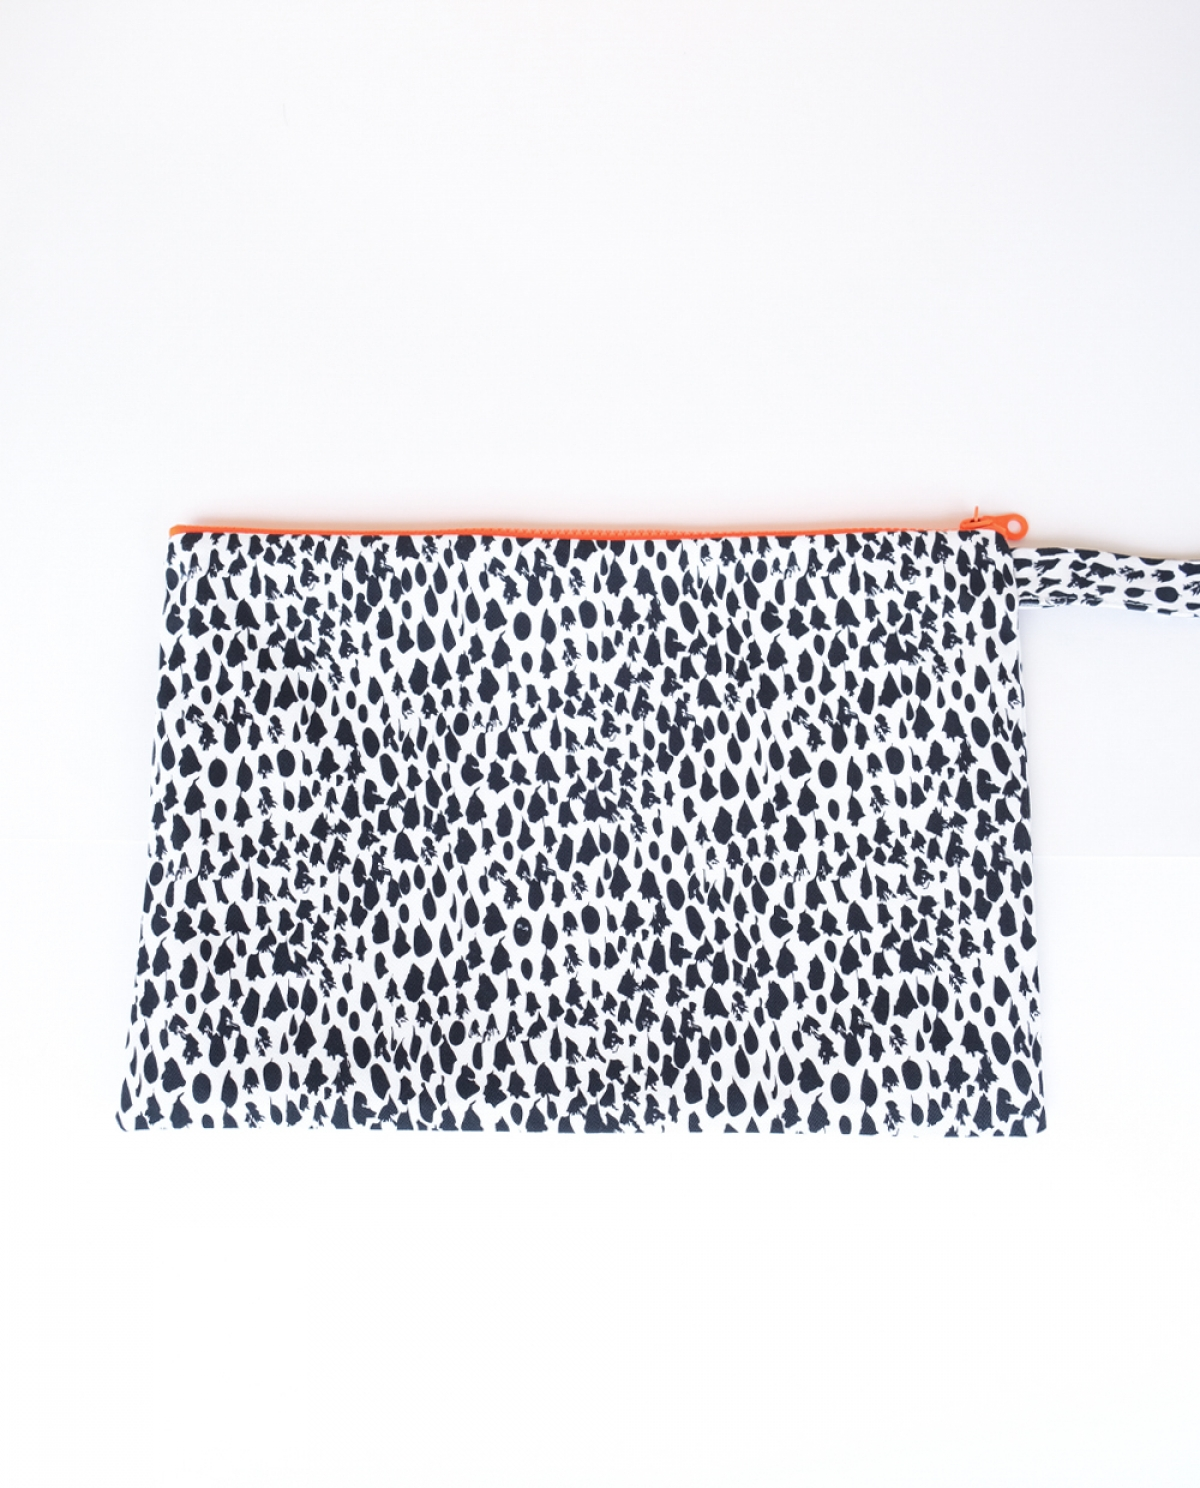 Anima Medium Clutch Bag